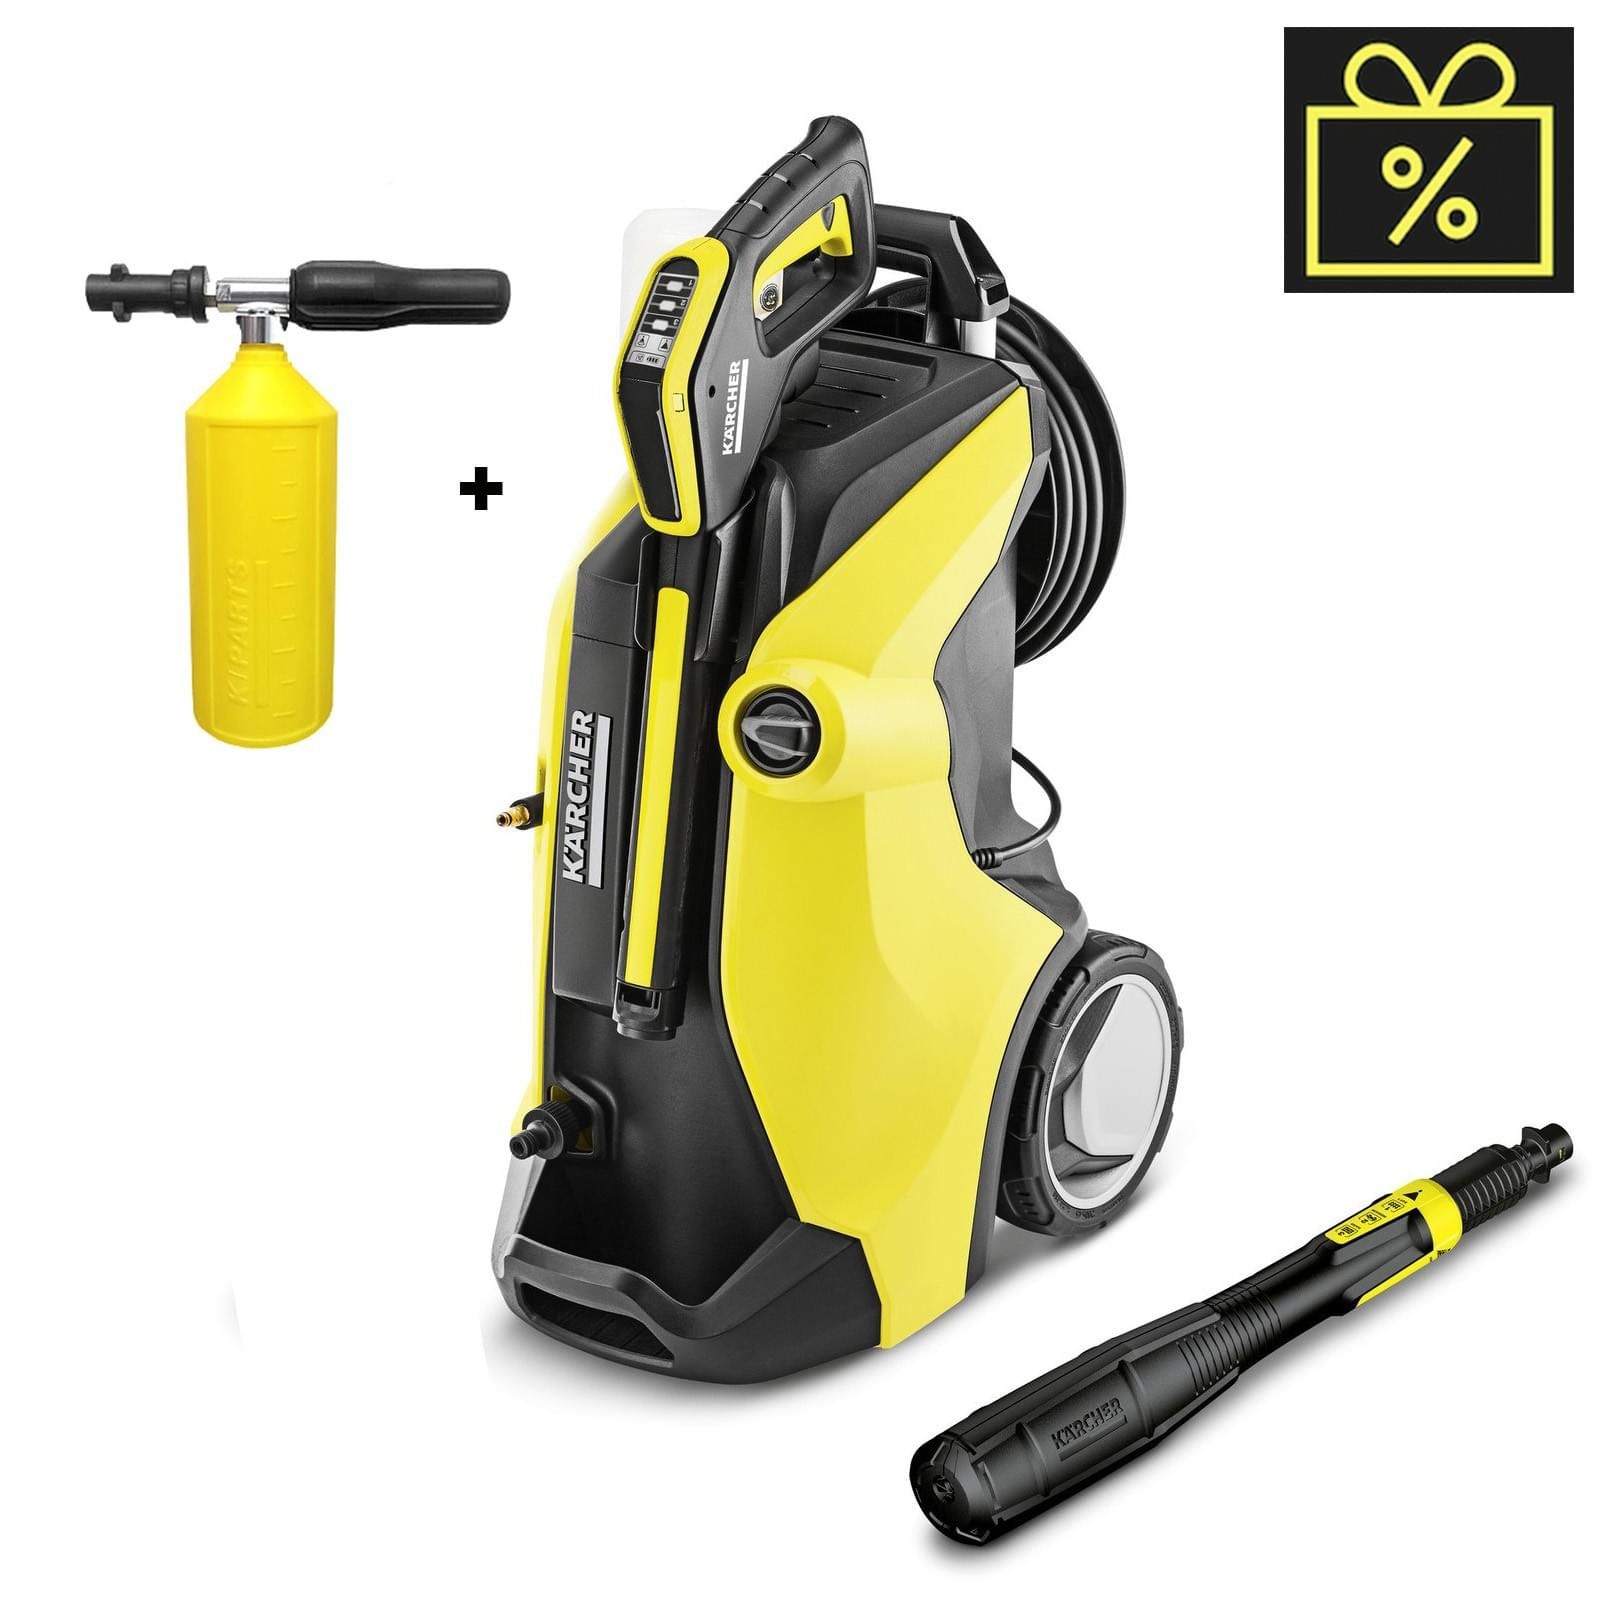 МИНИМОЙКА K 7 PREMIUM FULL CONTROL PLUS Karcher